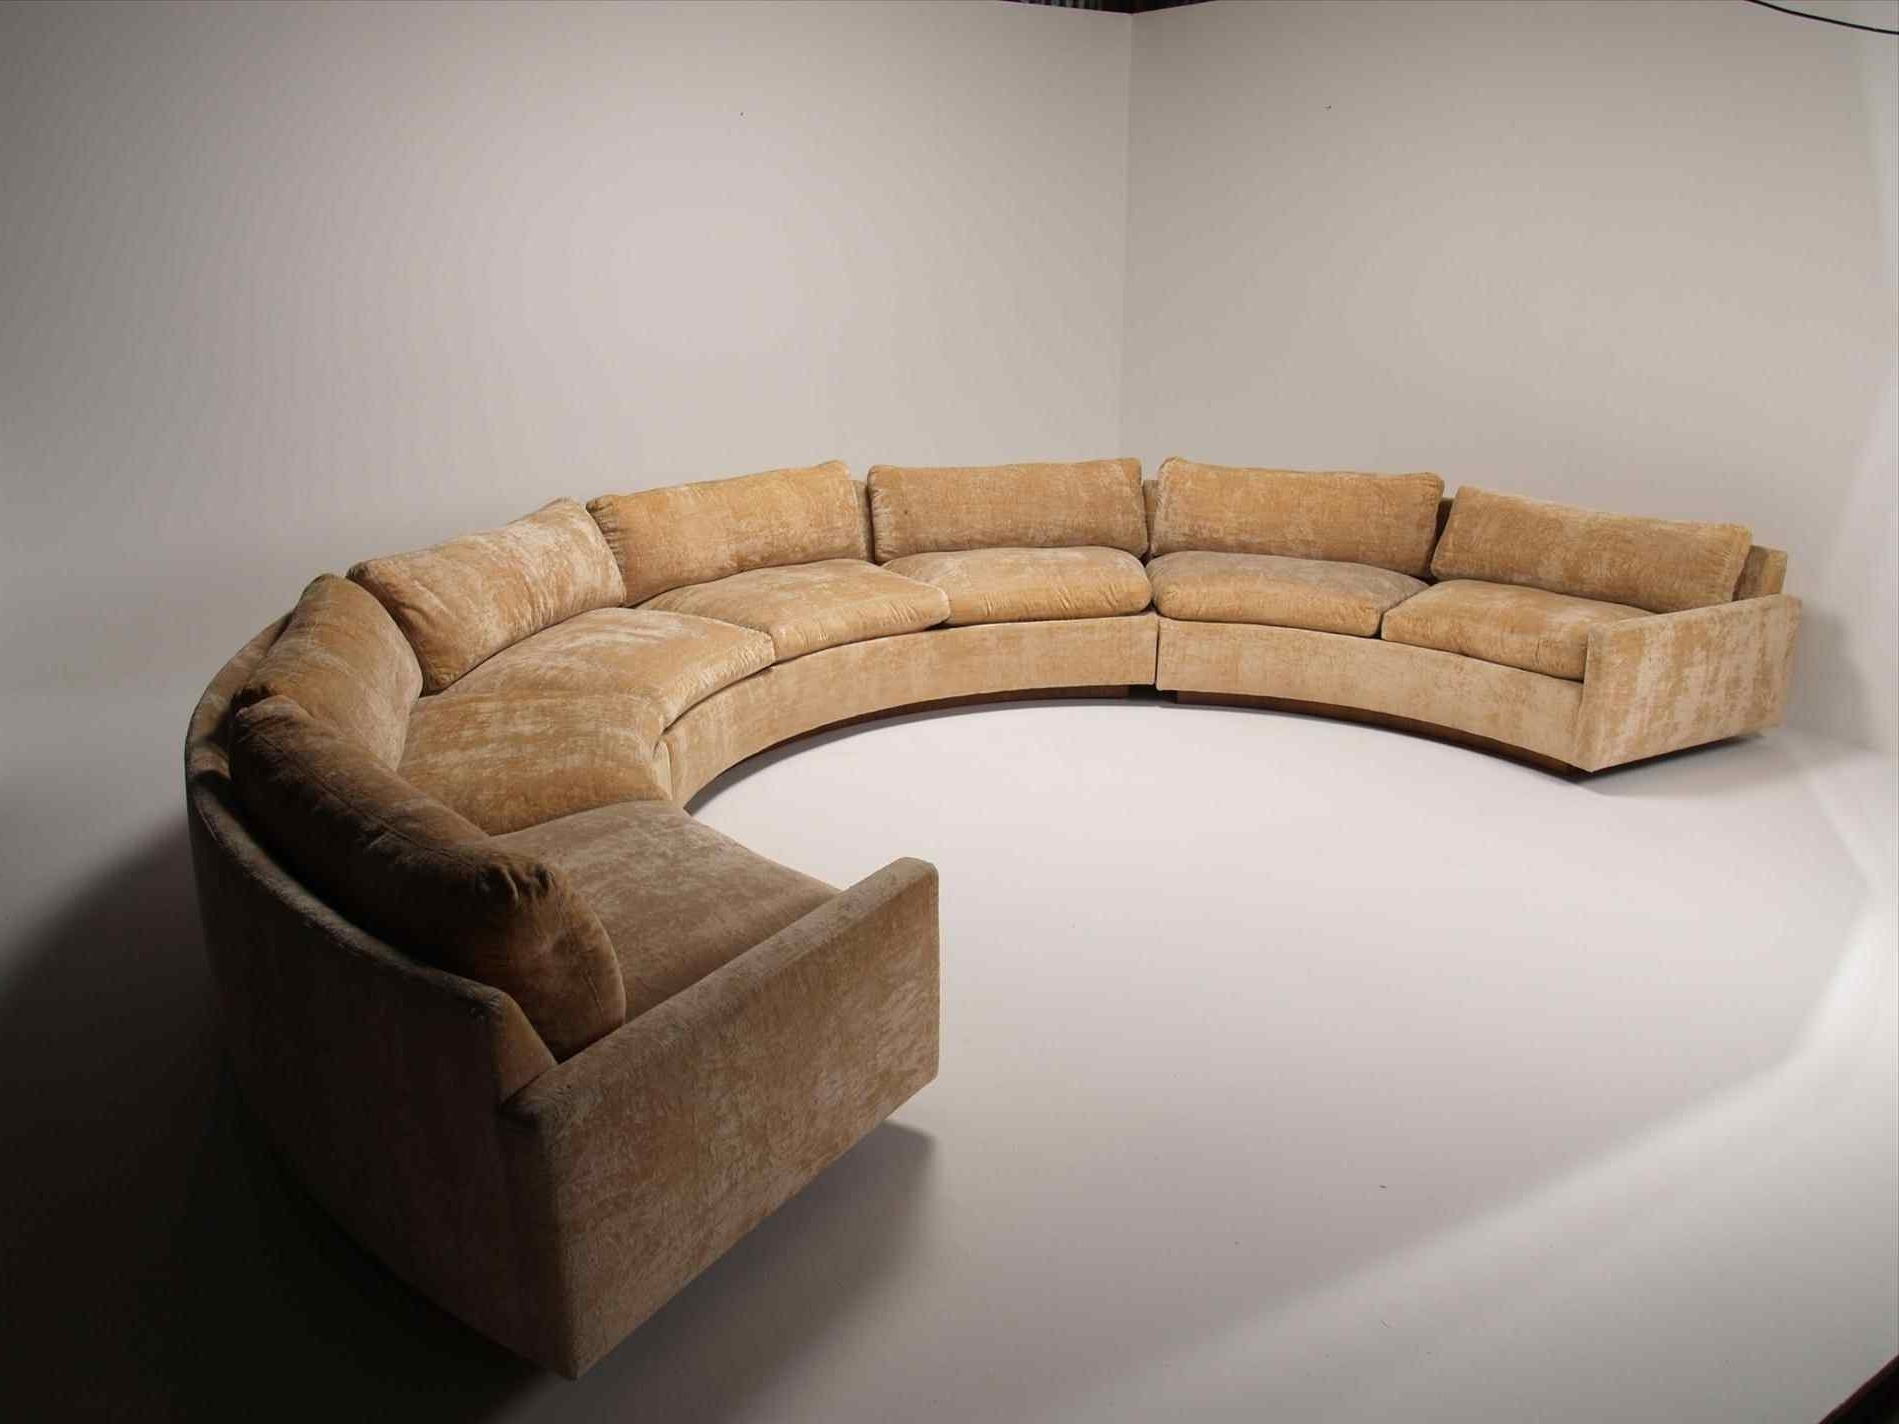 Couch : Longue Swivel And Snuggle Dfs Chairs Curved Loveseat Regarding Fashionable Circular Sofa Chairs (View 10 of 20)